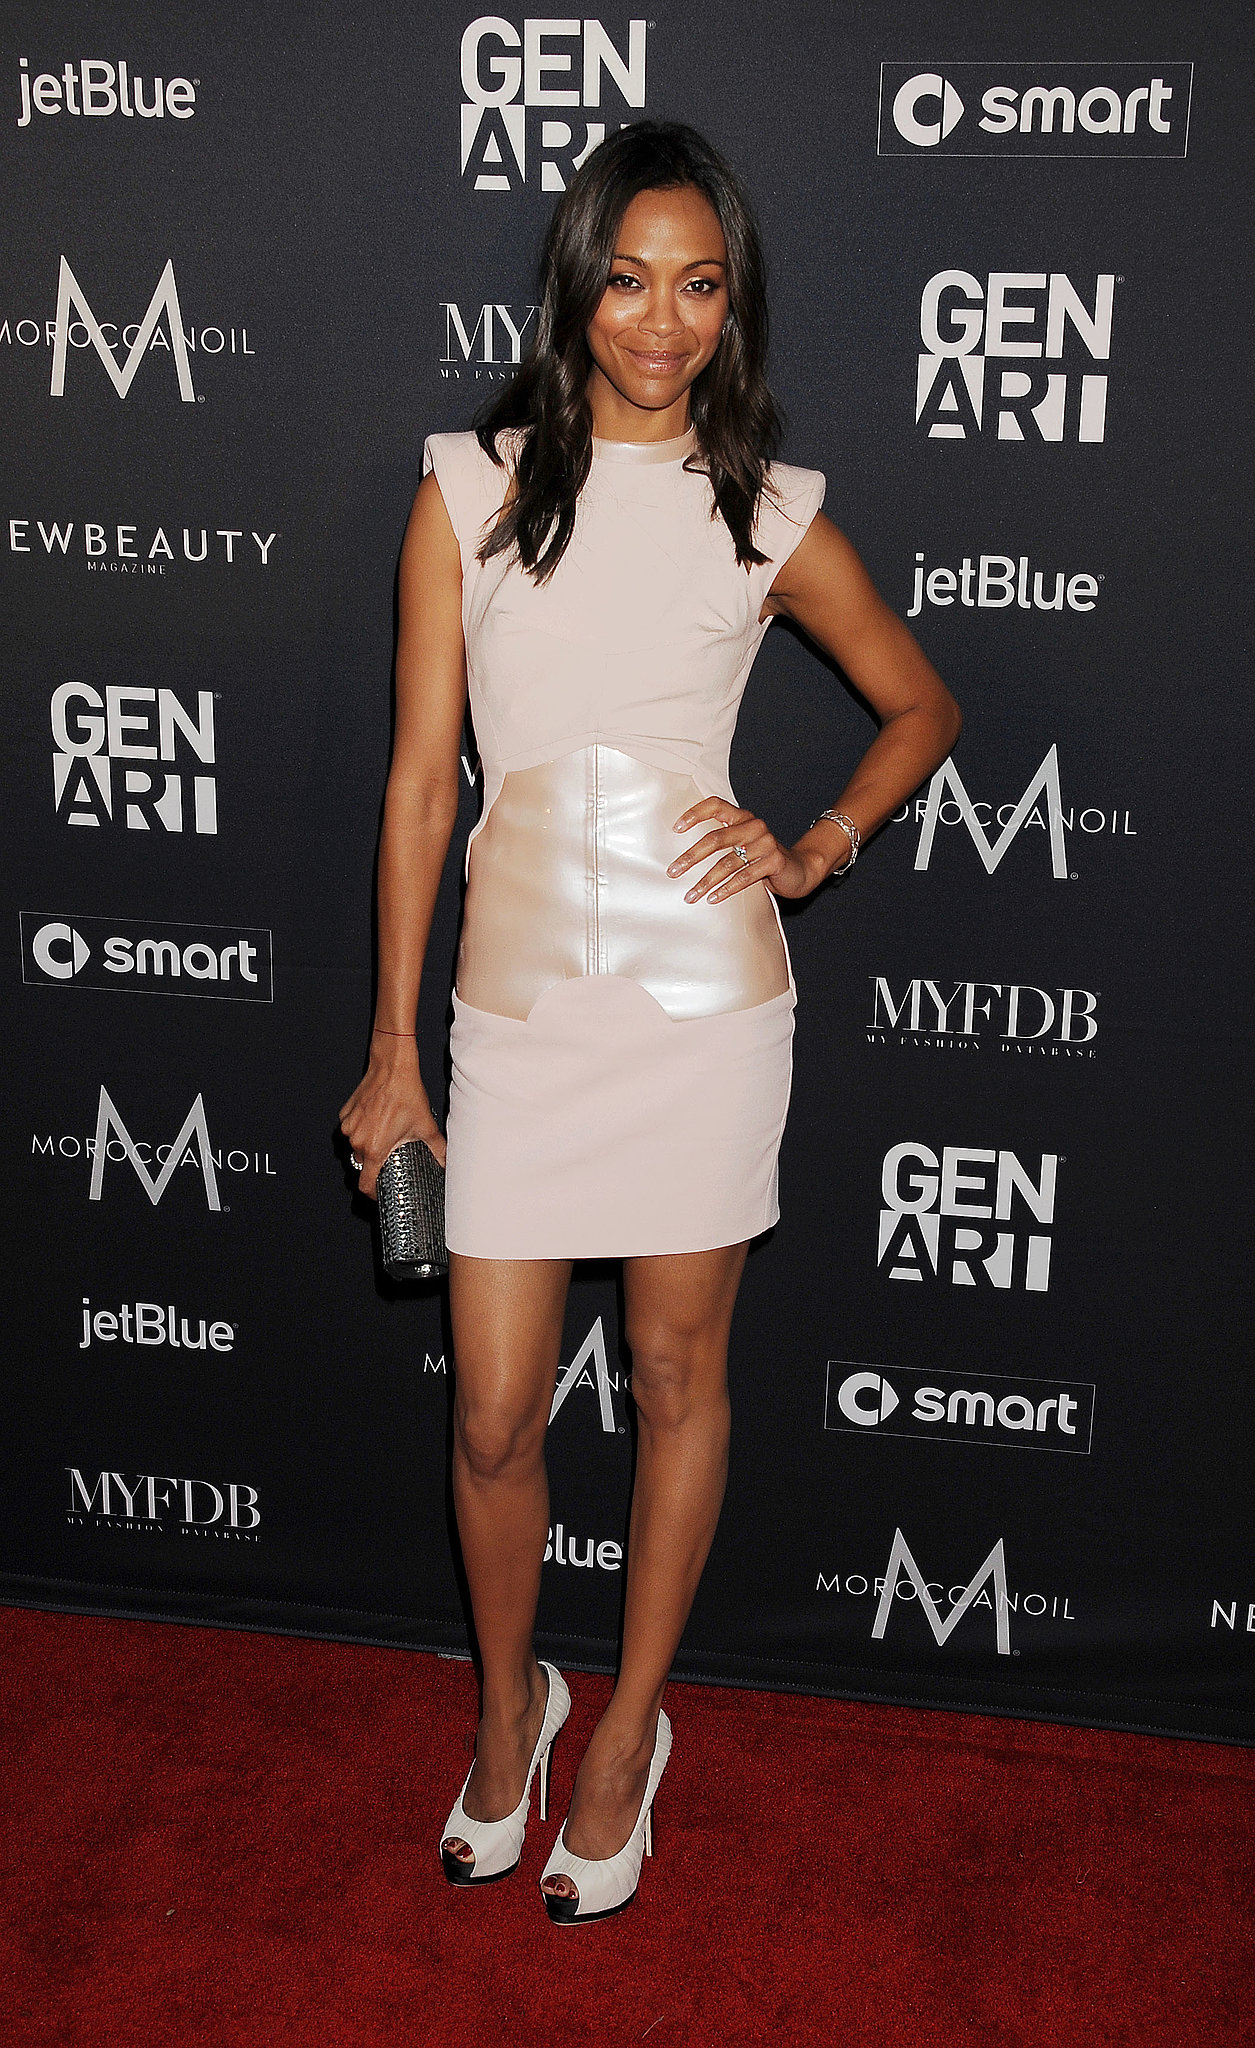 Zoe stepped out in this slick nude-toned Antonio Berardi minidress and white peep-toe Giuseppe Zanotti pumps at the Gen Art Fresh Faces event in LA last October.